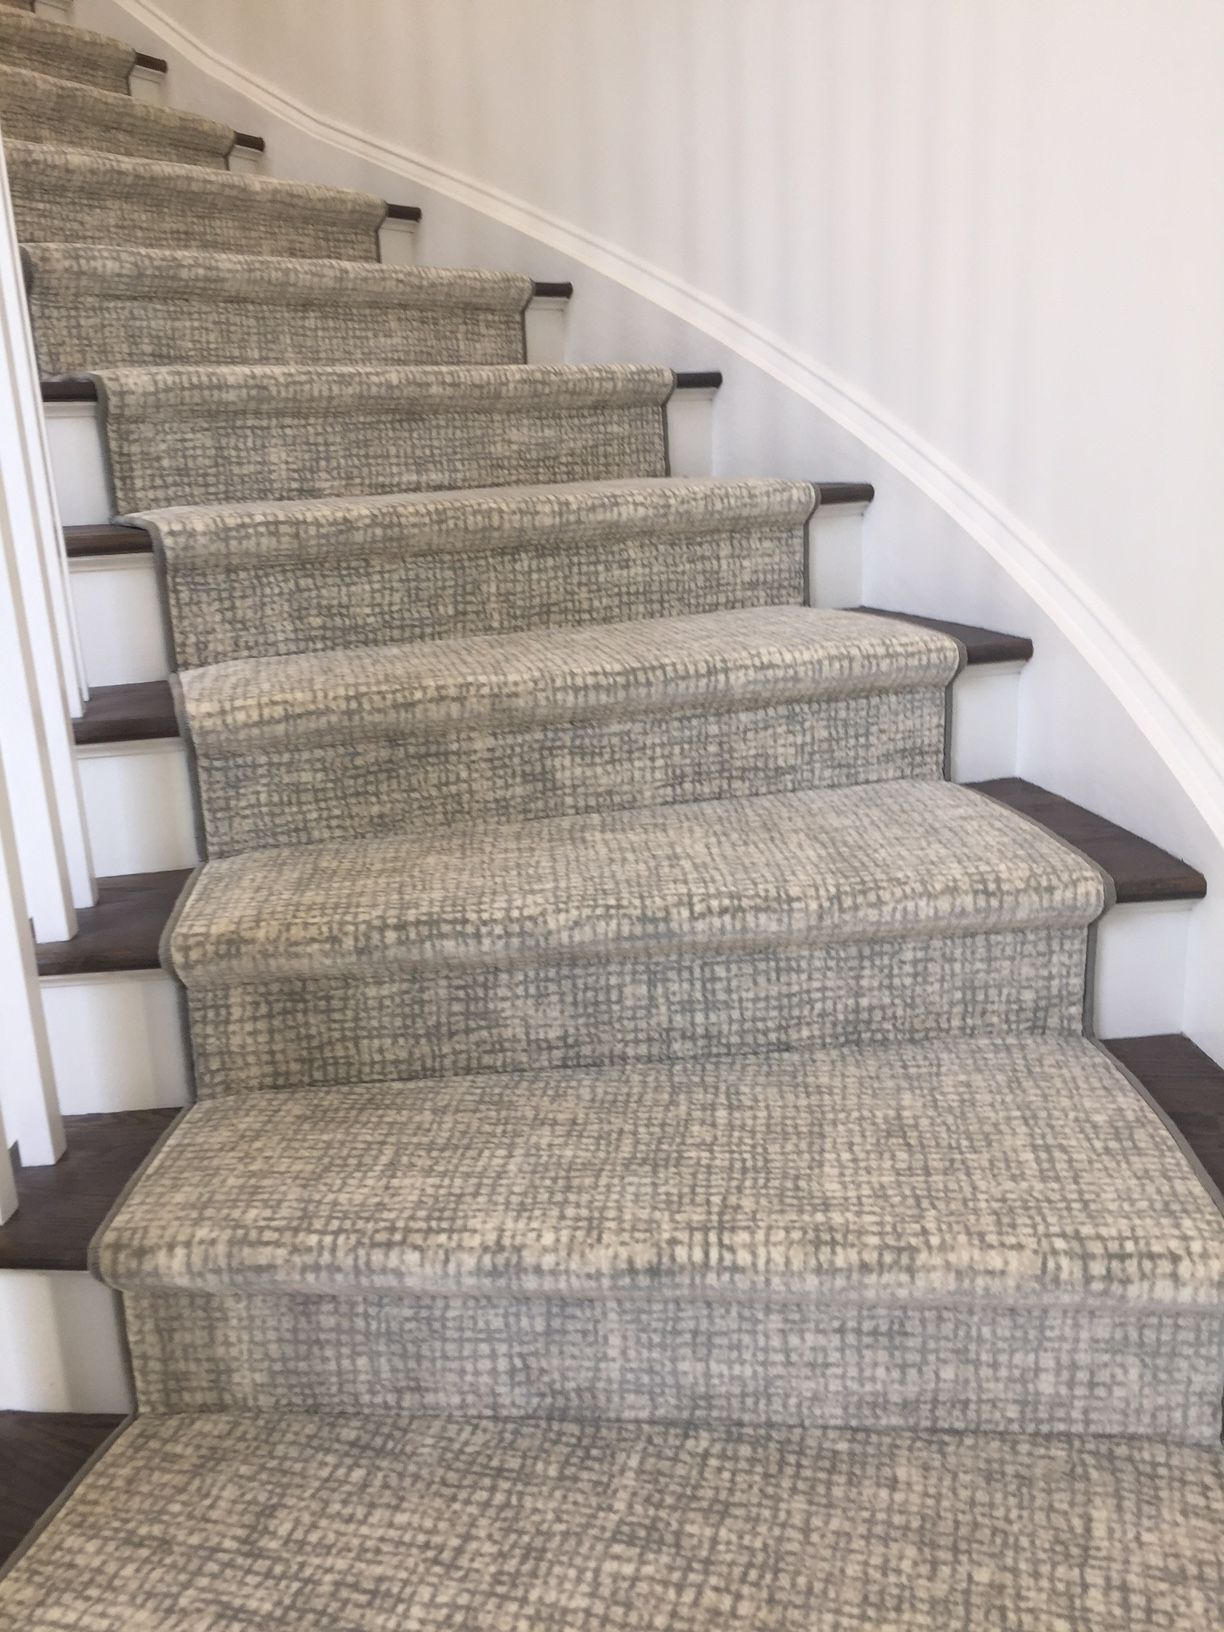 Install Of Carpet One Curved Staircase Runner With Standard Binding We Tackle All Projects Stair Runner Carpet Patterned Stair Carpet Carpet Staircase